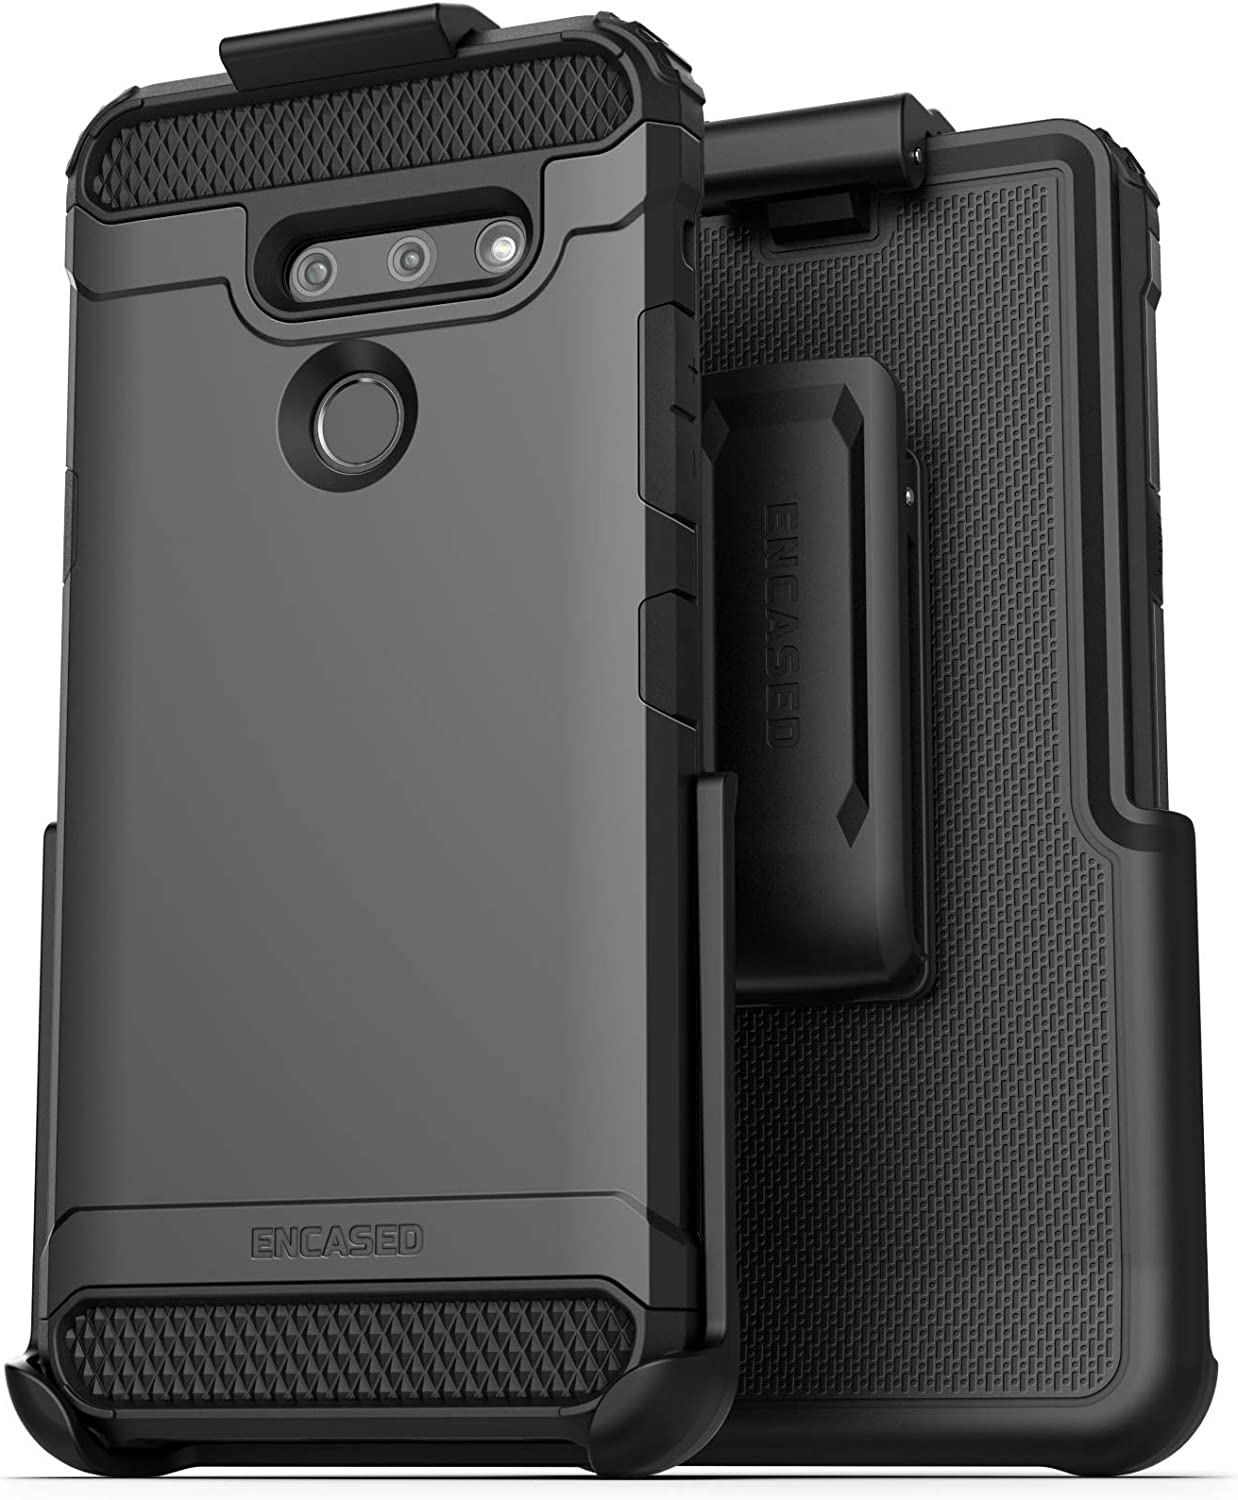 Encased Belt Clip Holster Case Compatible with LG G8 ThinQ (Scorpio Armor) Protective Tough Grip Cover with Holder - Black